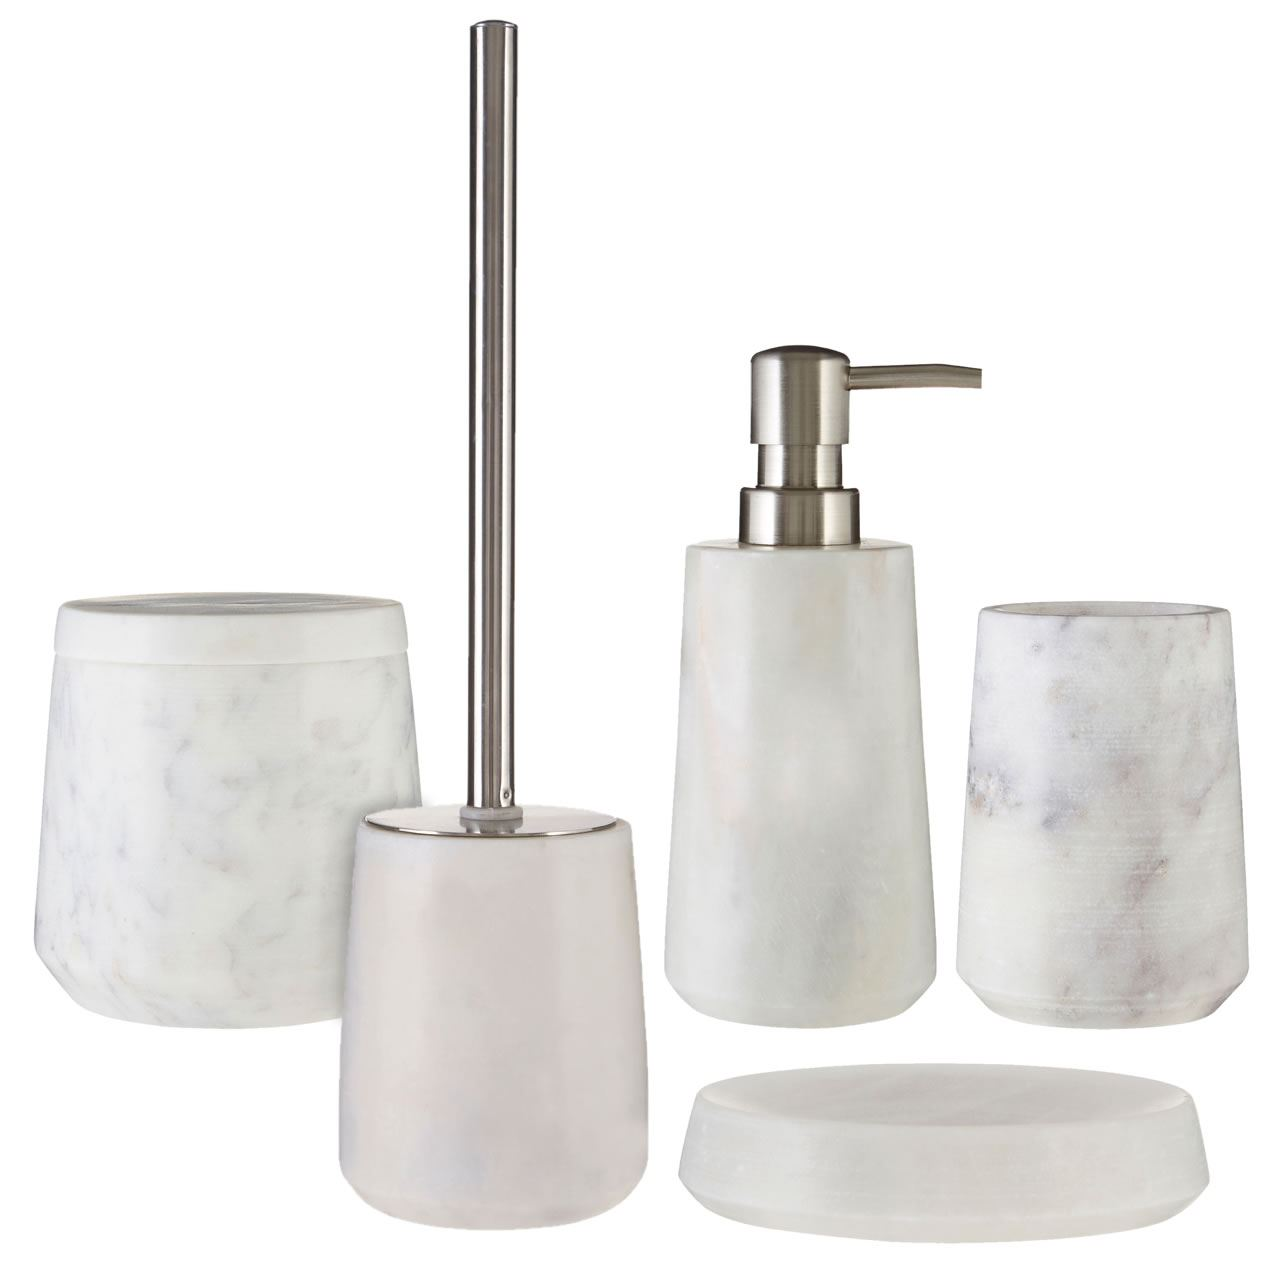 5 piece marble bathroom accessories set soap dish tumbler for Bathroom fittings set